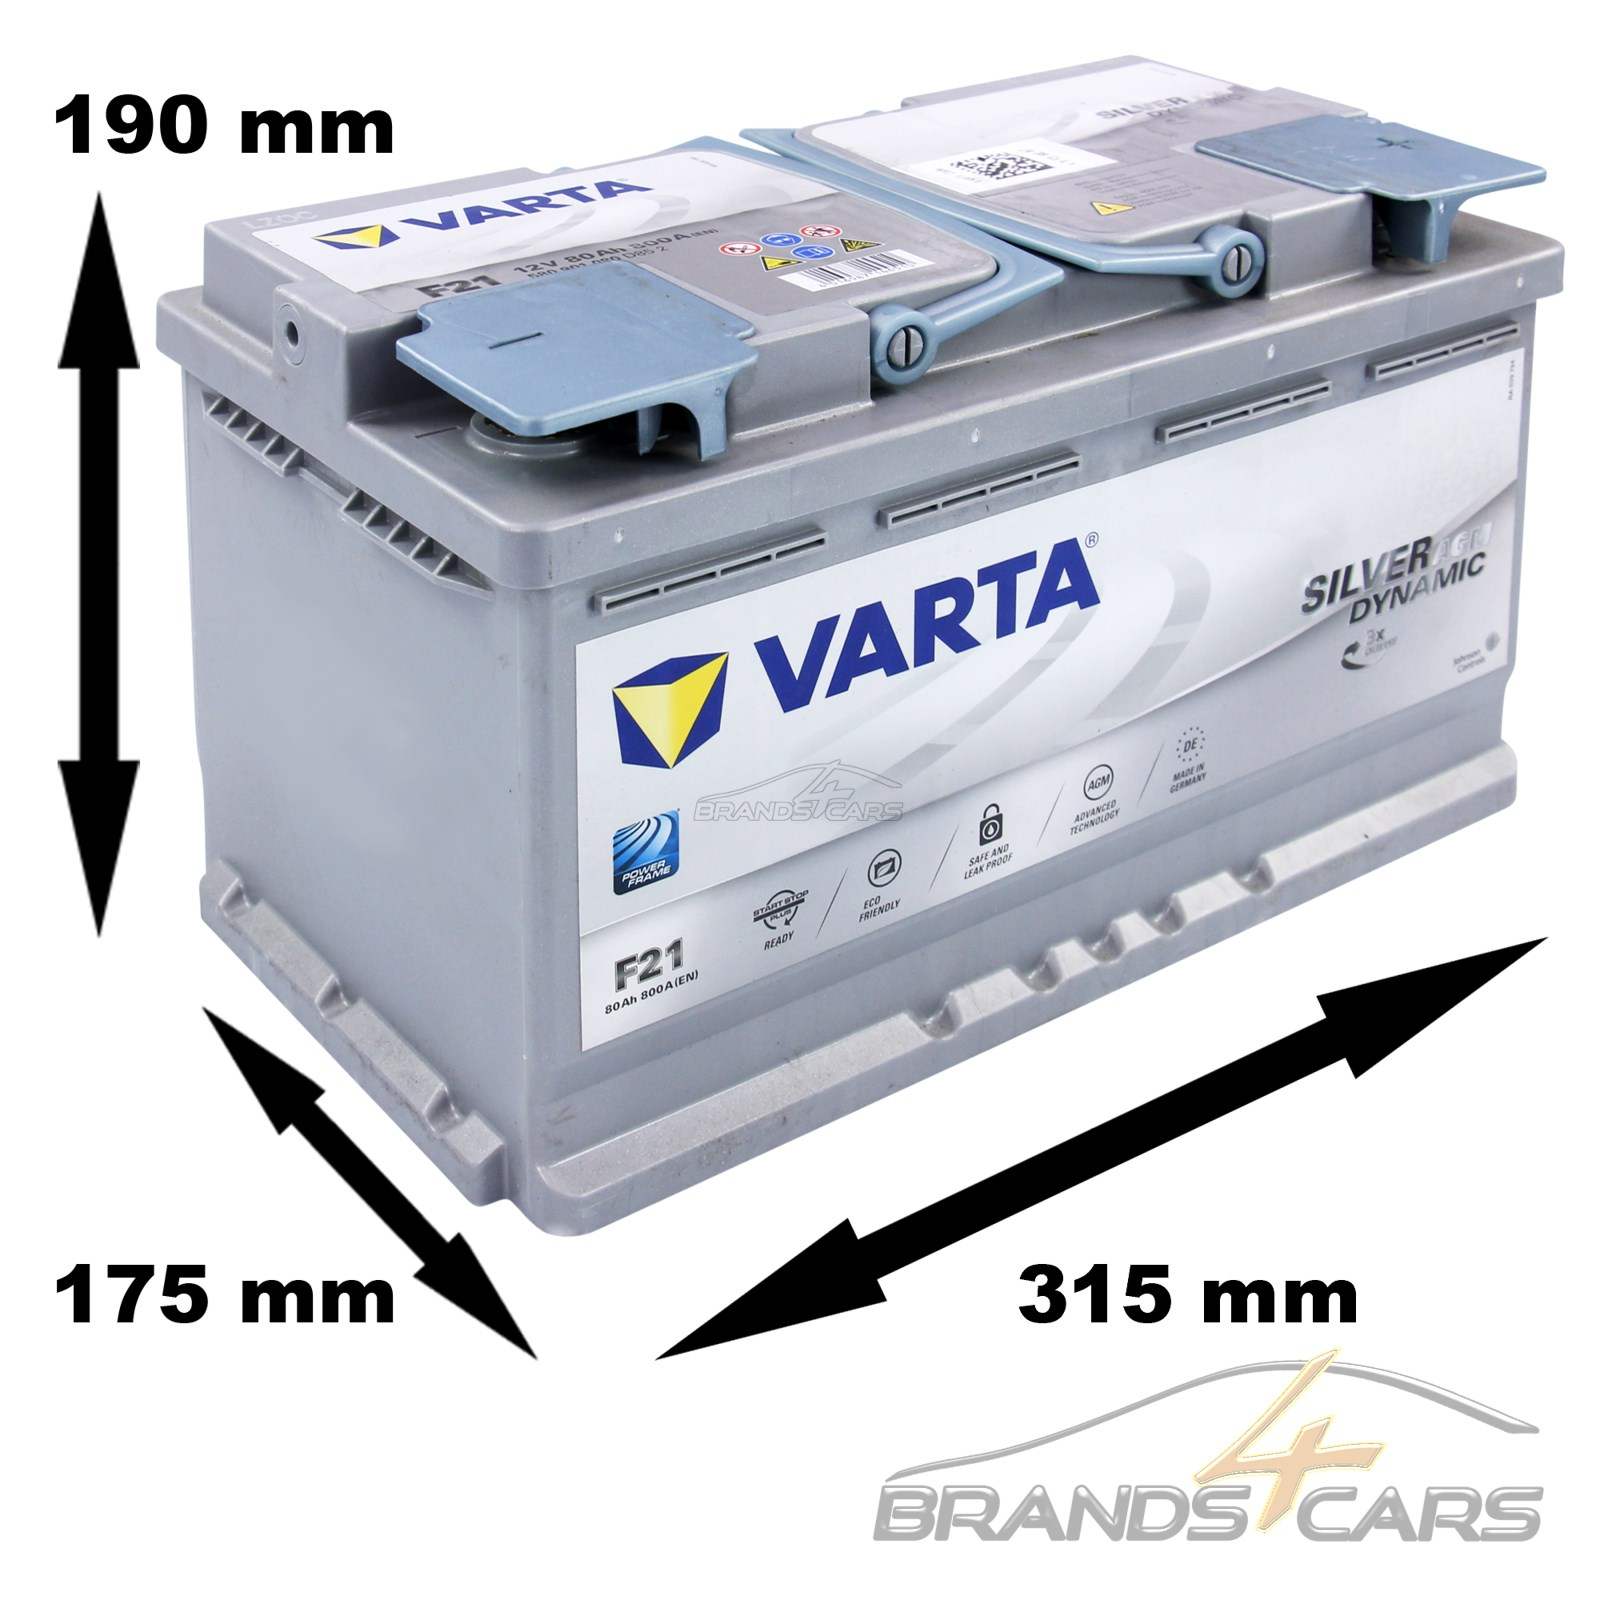 varta silver dynamic 12v 80ah 800a agm batterie start stop autobatterie 31610969 ebay. Black Bedroom Furniture Sets. Home Design Ideas